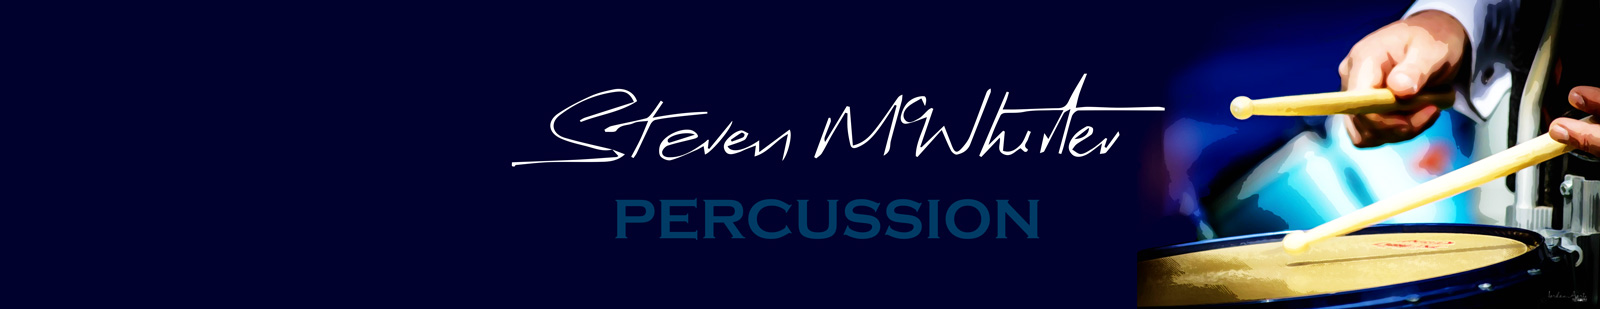 Steven McWhirter Percussion